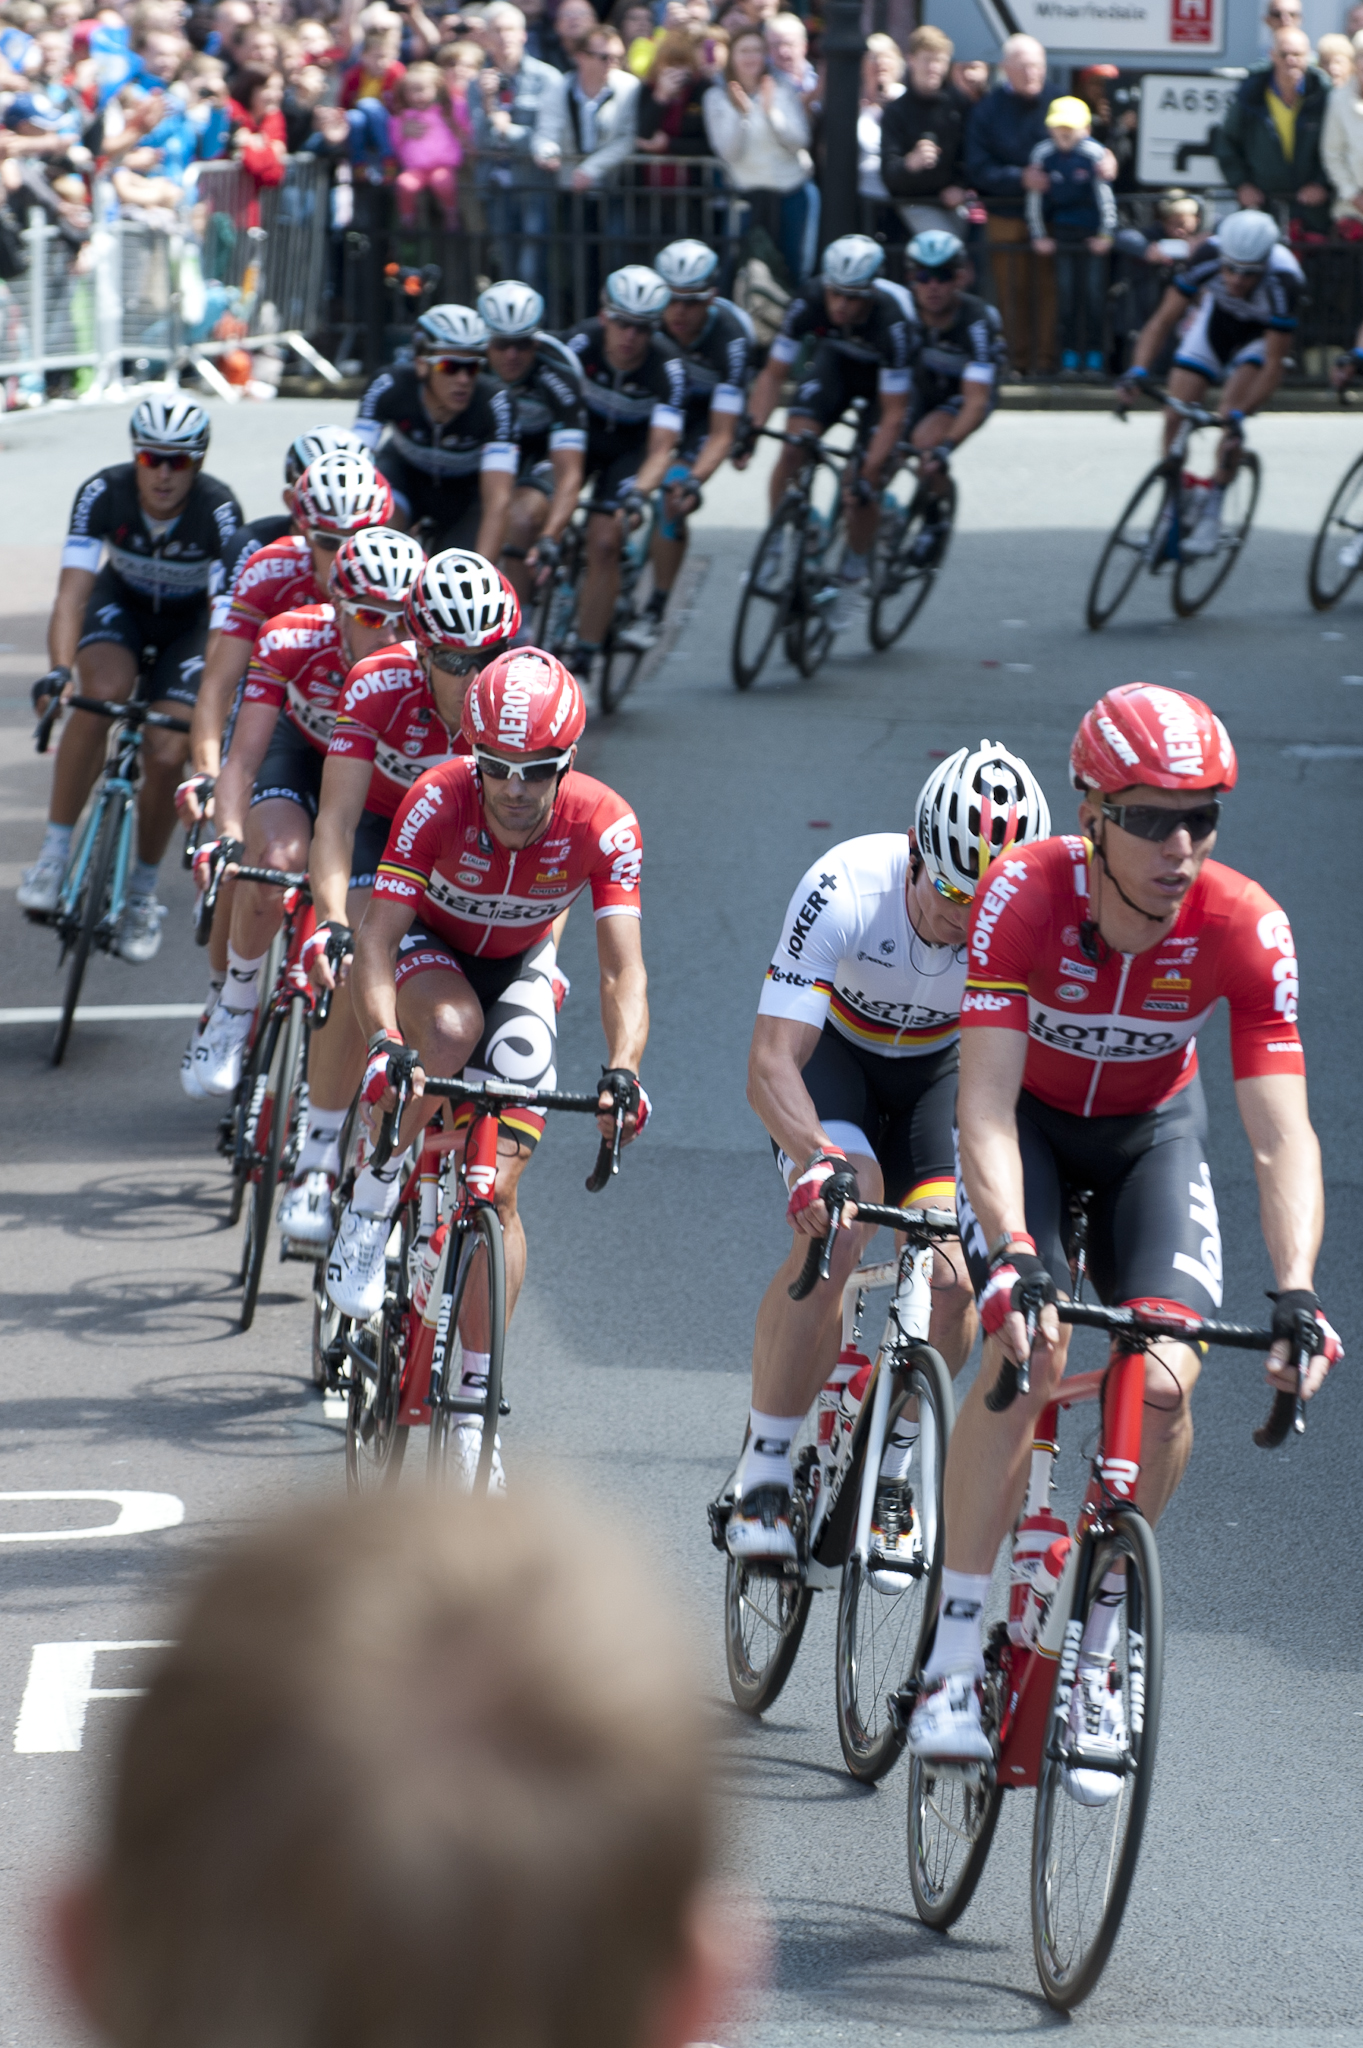 It was a number of minutes before the peloton arrived, with Marcel Sieberg leading 'Gorilla' Greipel, Lotto Belisol and Omega Pharma Quick Step through the town..